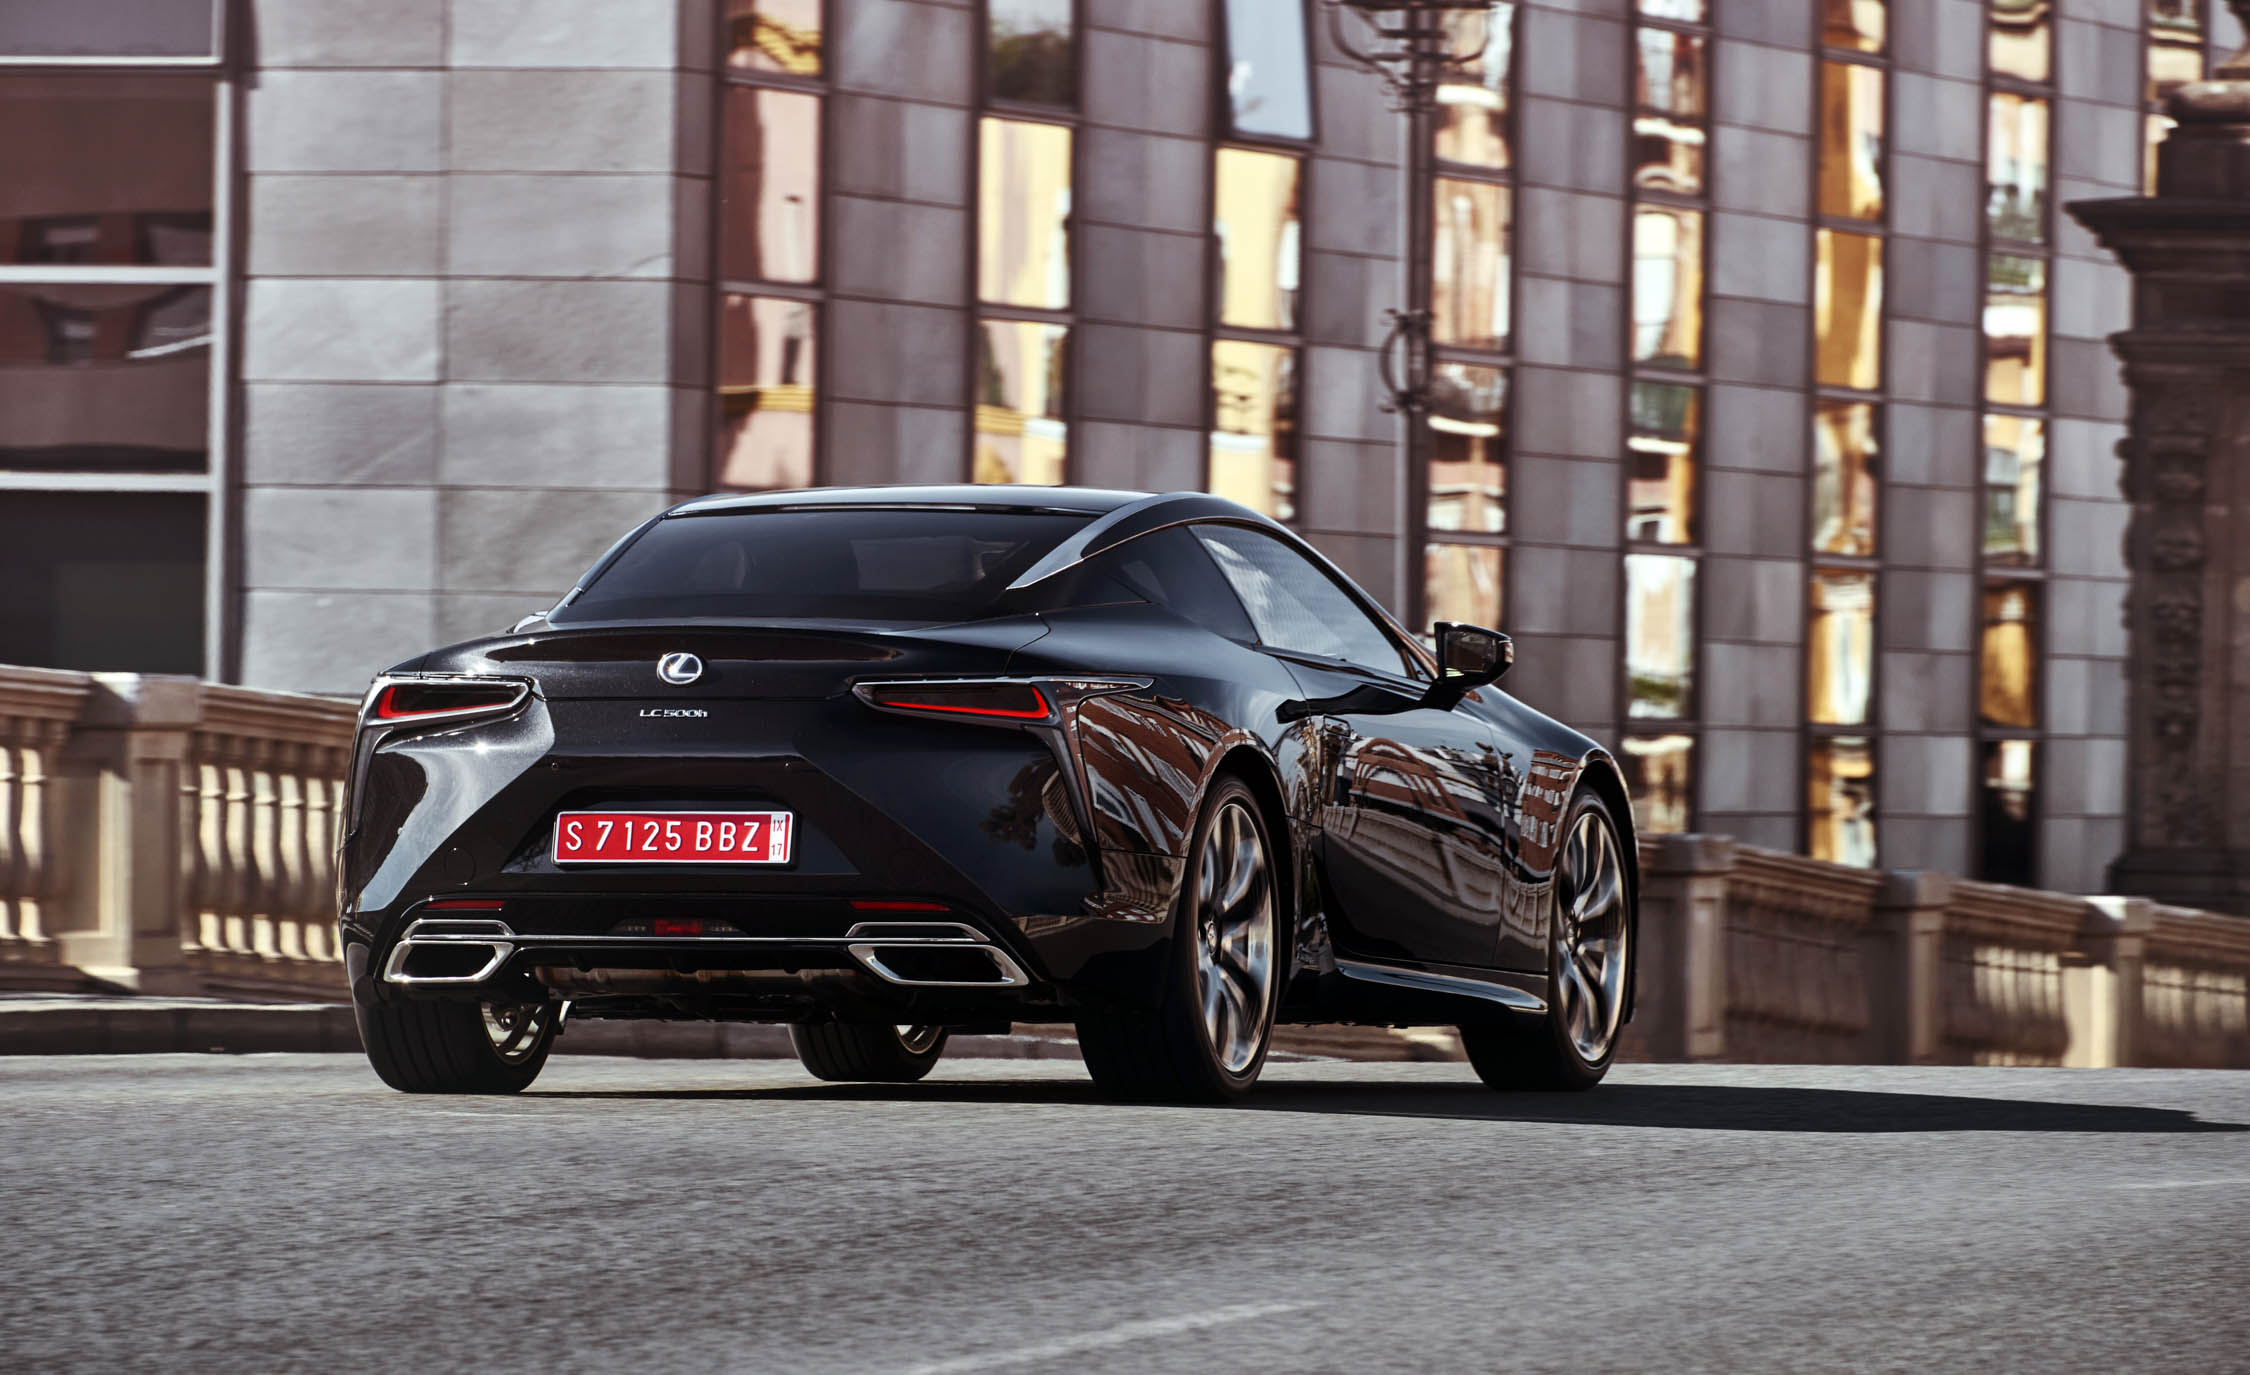 2018 Lexus Lc 500h Black Rear Corner (Photo 48 of 84)